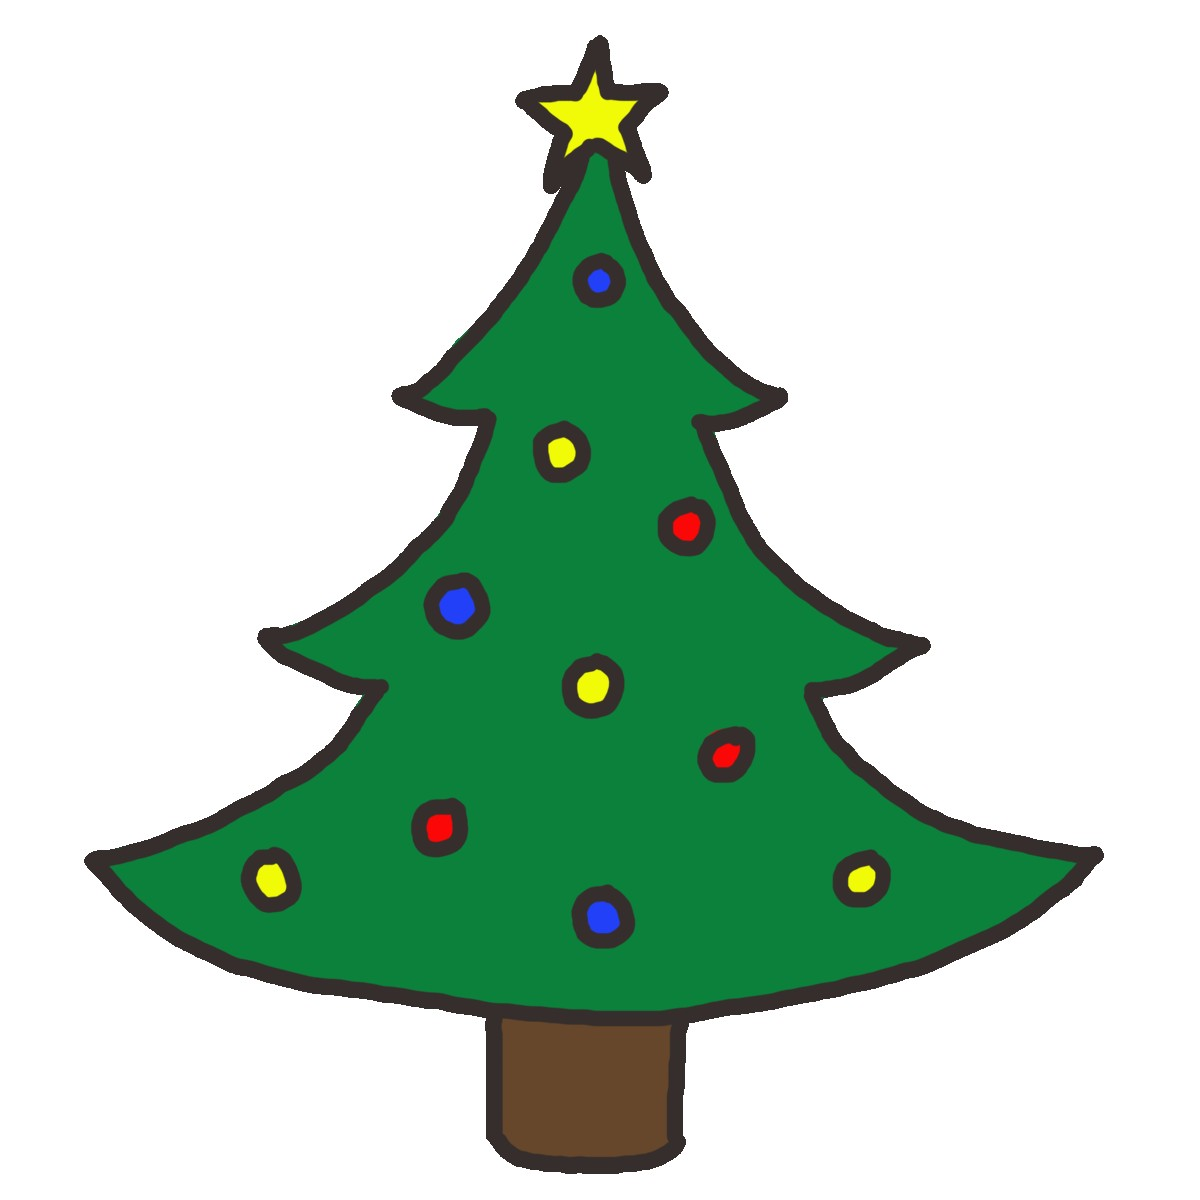 1200x1200 Pine Tree Silhouette And Clip Art On 2 Christmas Also